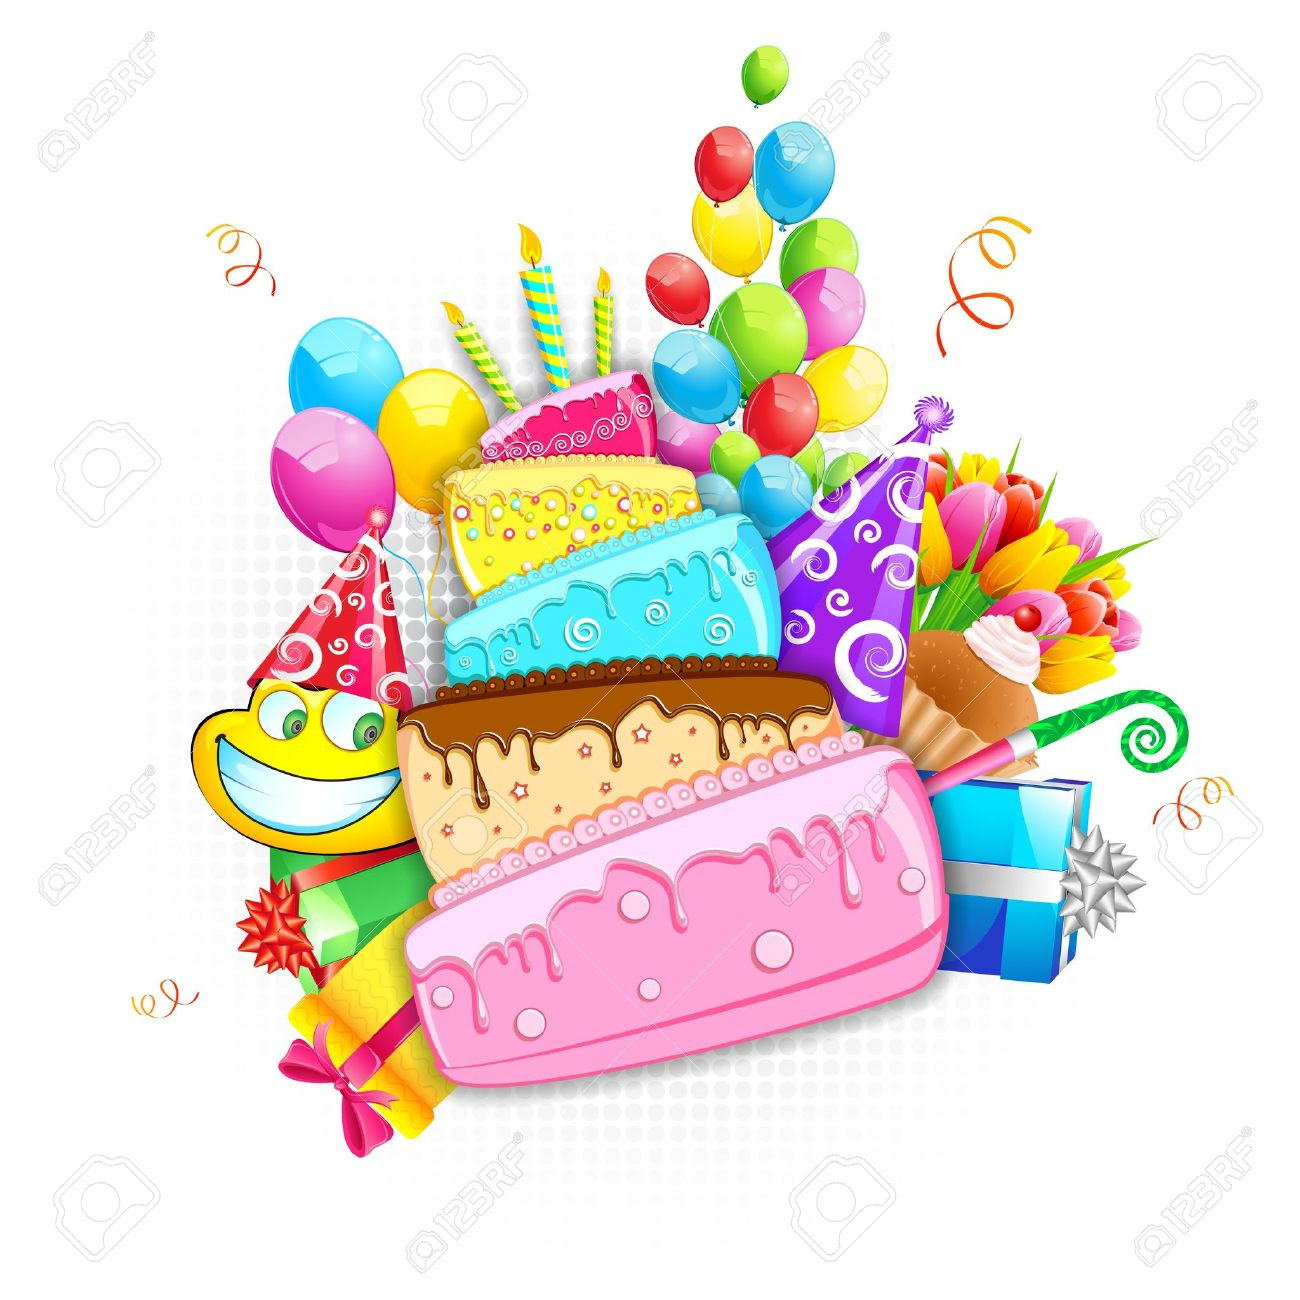 Illustration Of Birthday Card With Cake Balloon And Gift Boxes